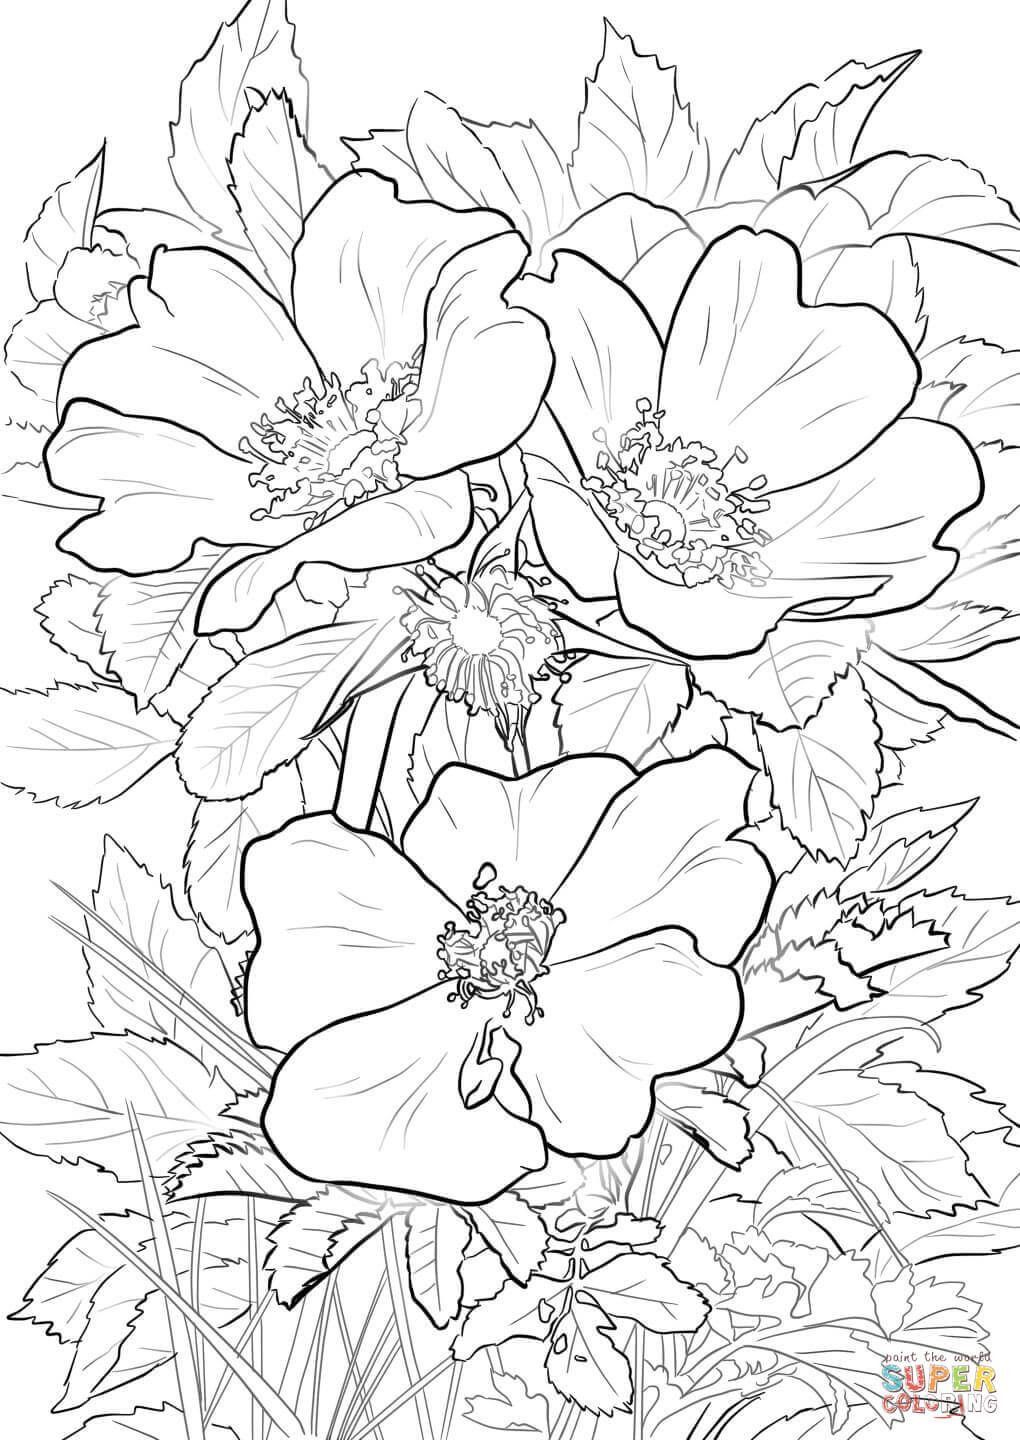 Iowa State Flower Coloring Page Youngandtae Com In 2020 Flower Coloring Pages Rose Coloring Pages Flower Drawing